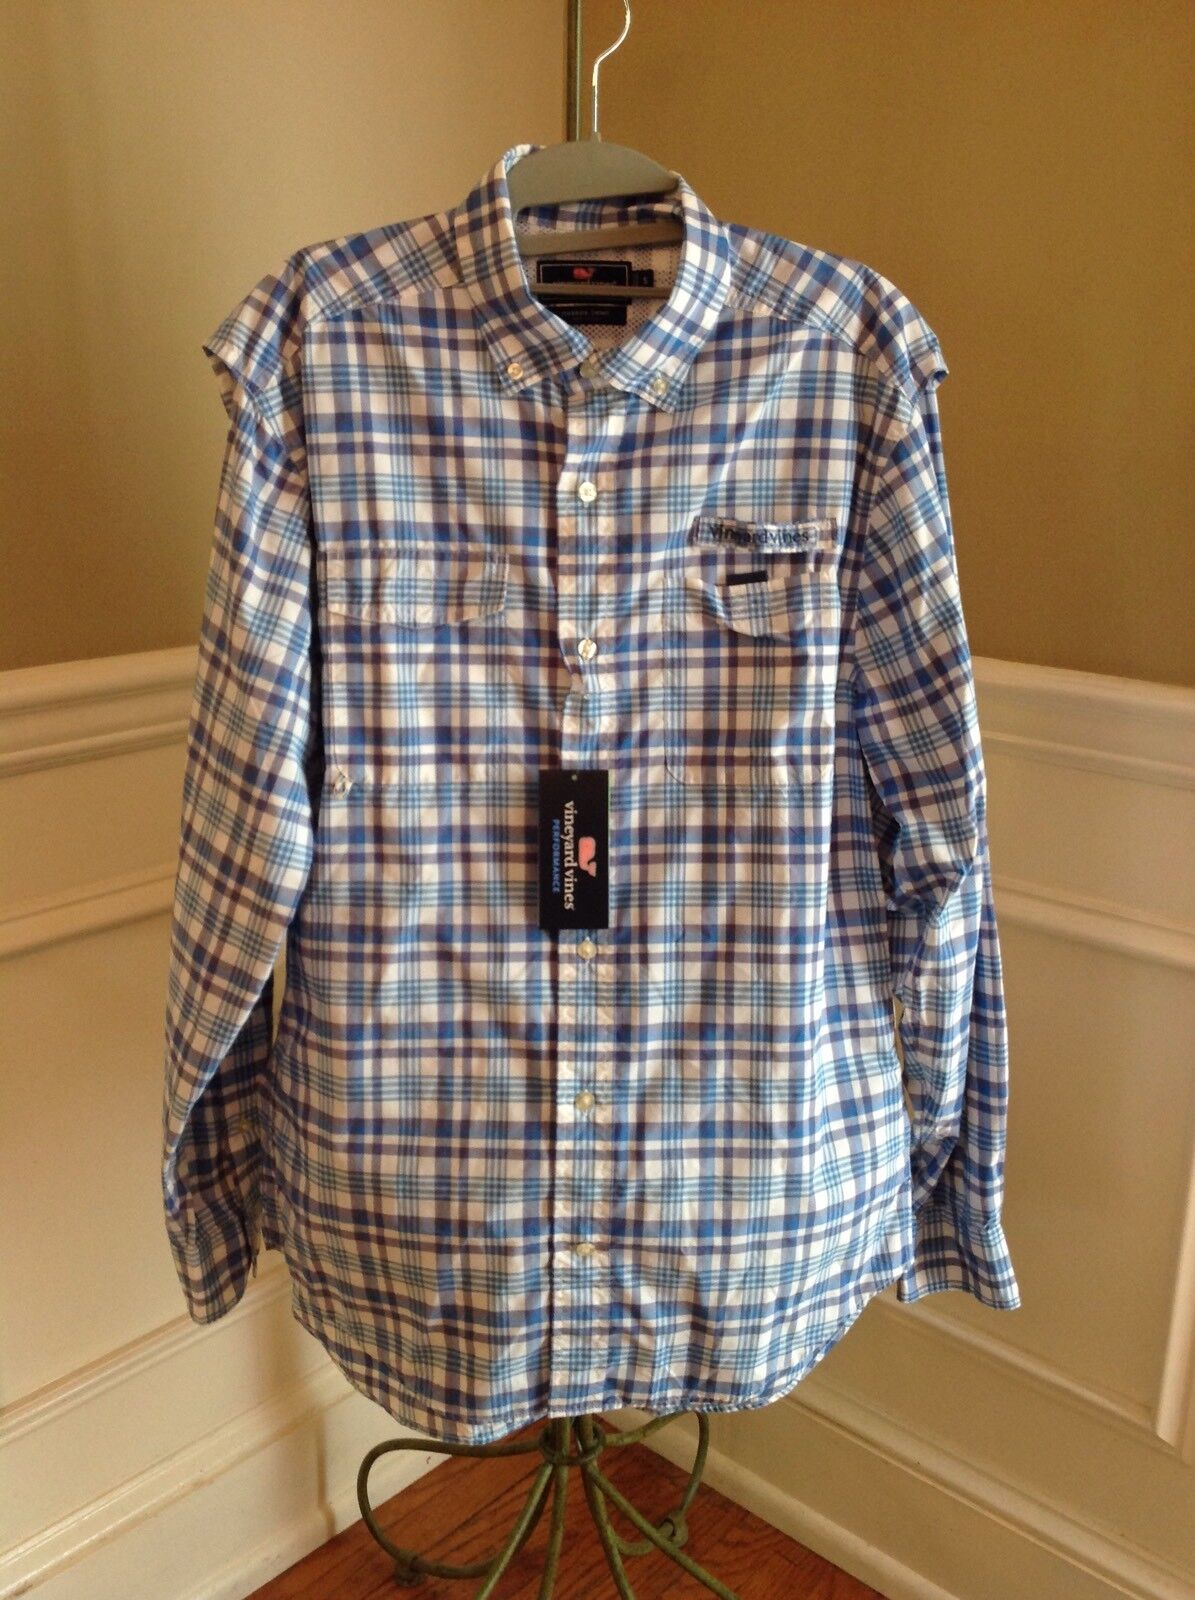 NWT Vineyard Vines Flag bluee Bodkin Plaid Harbor Fishing Shirt Size Medium